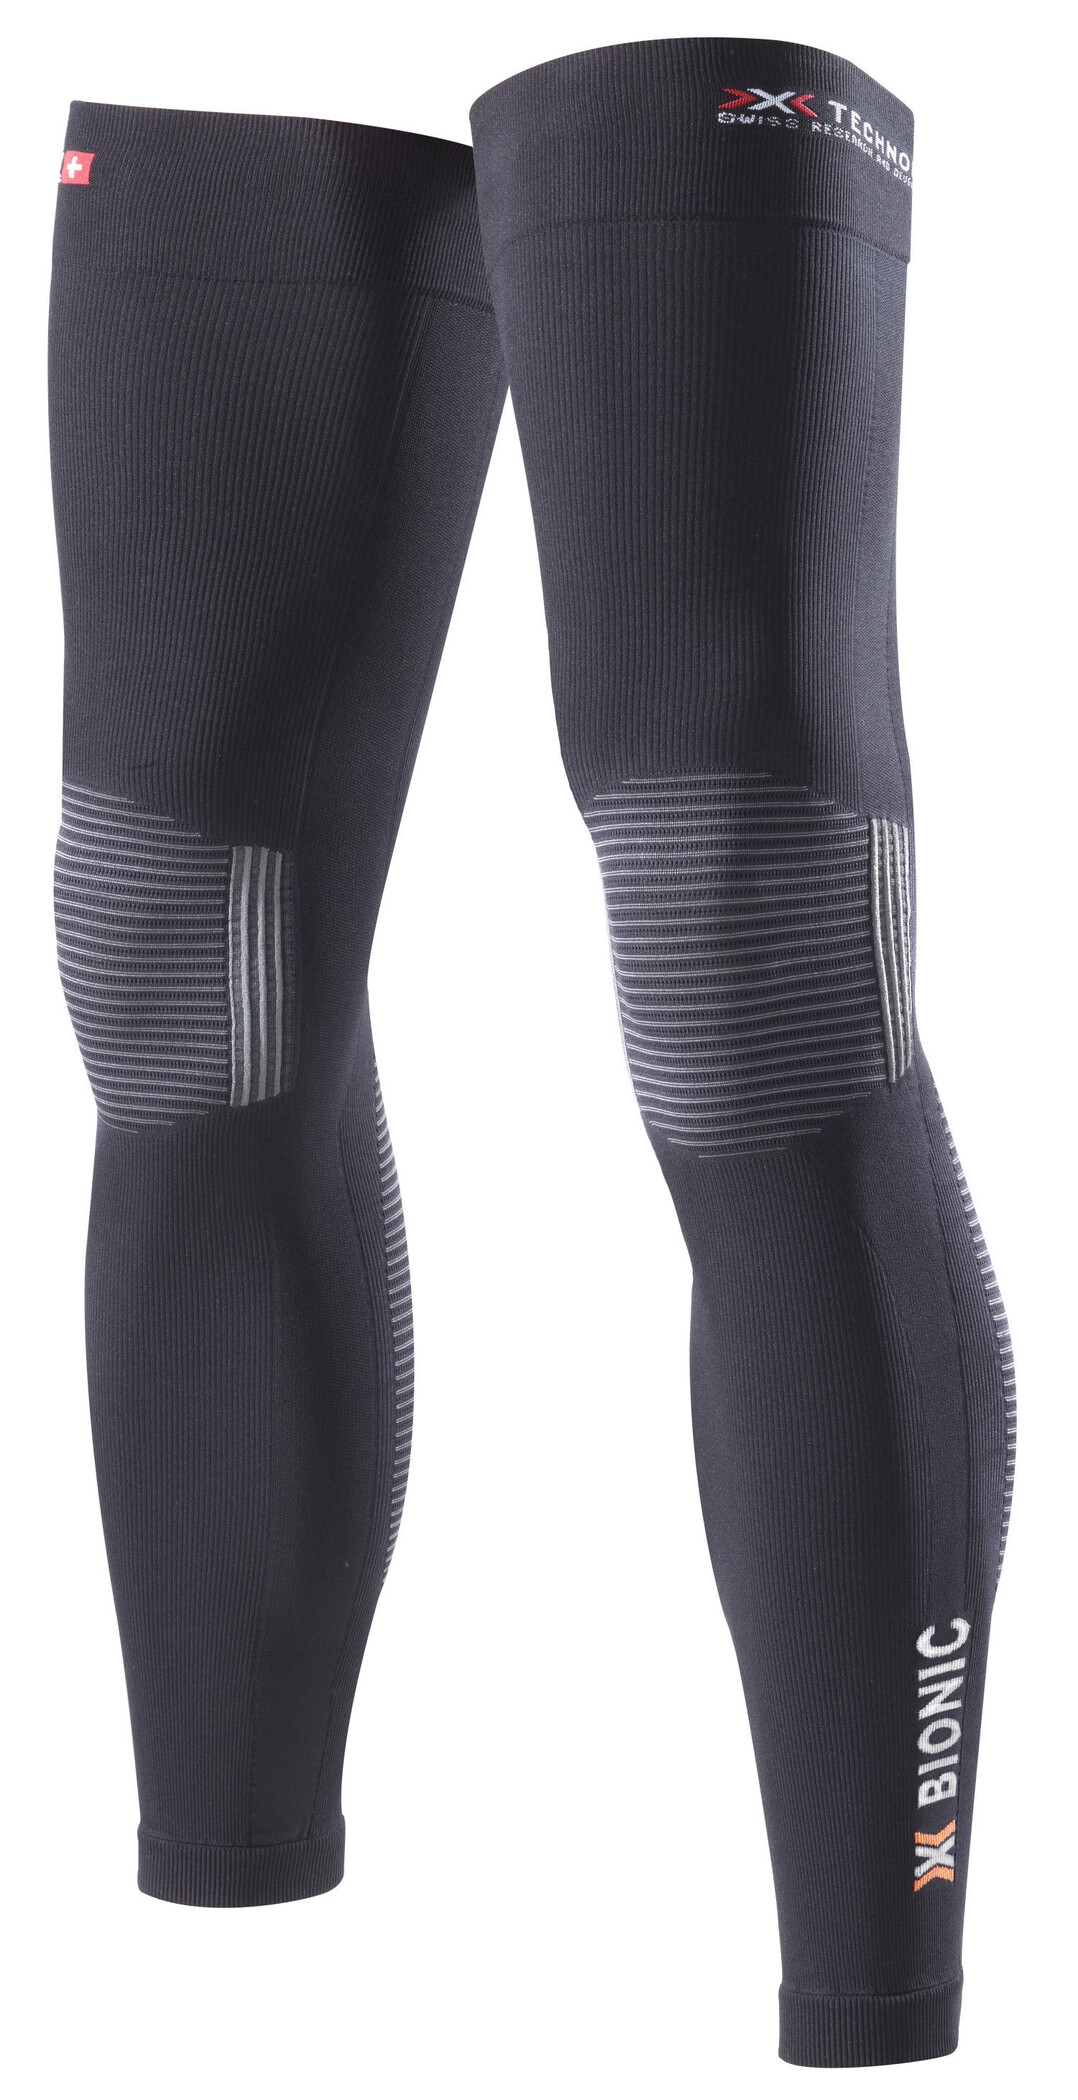 X-Bionic PK-2 Energy Accumulator Summer Light Varmere, black/pearl grey | Warmers